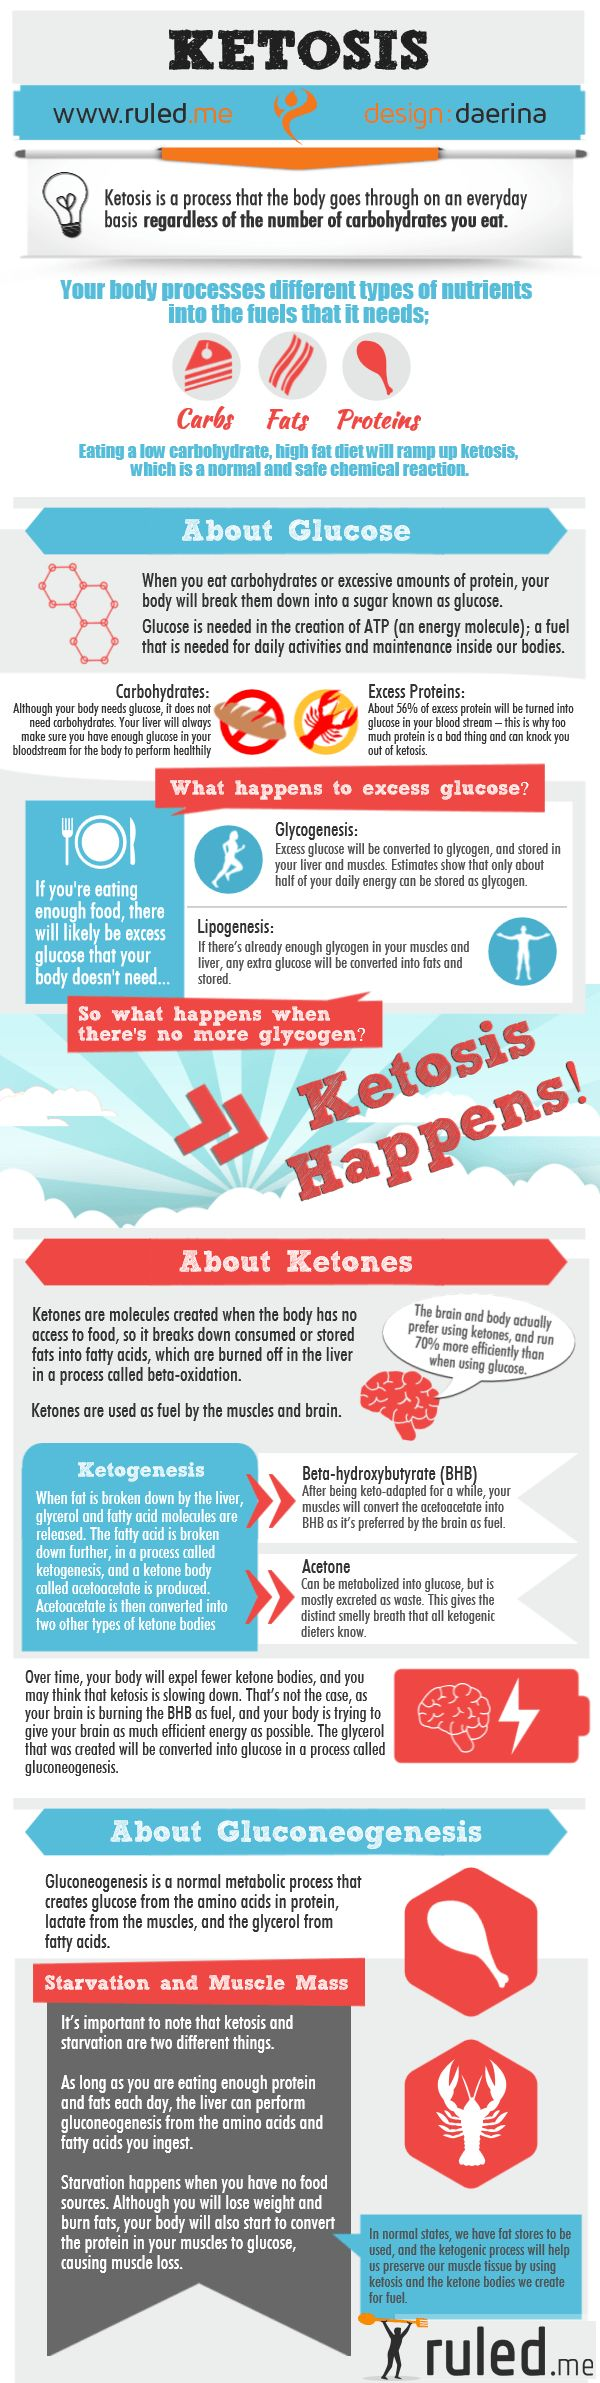 Ketosis Infographic / #lowcarb shared on https://facebook.com/lowcarbzen